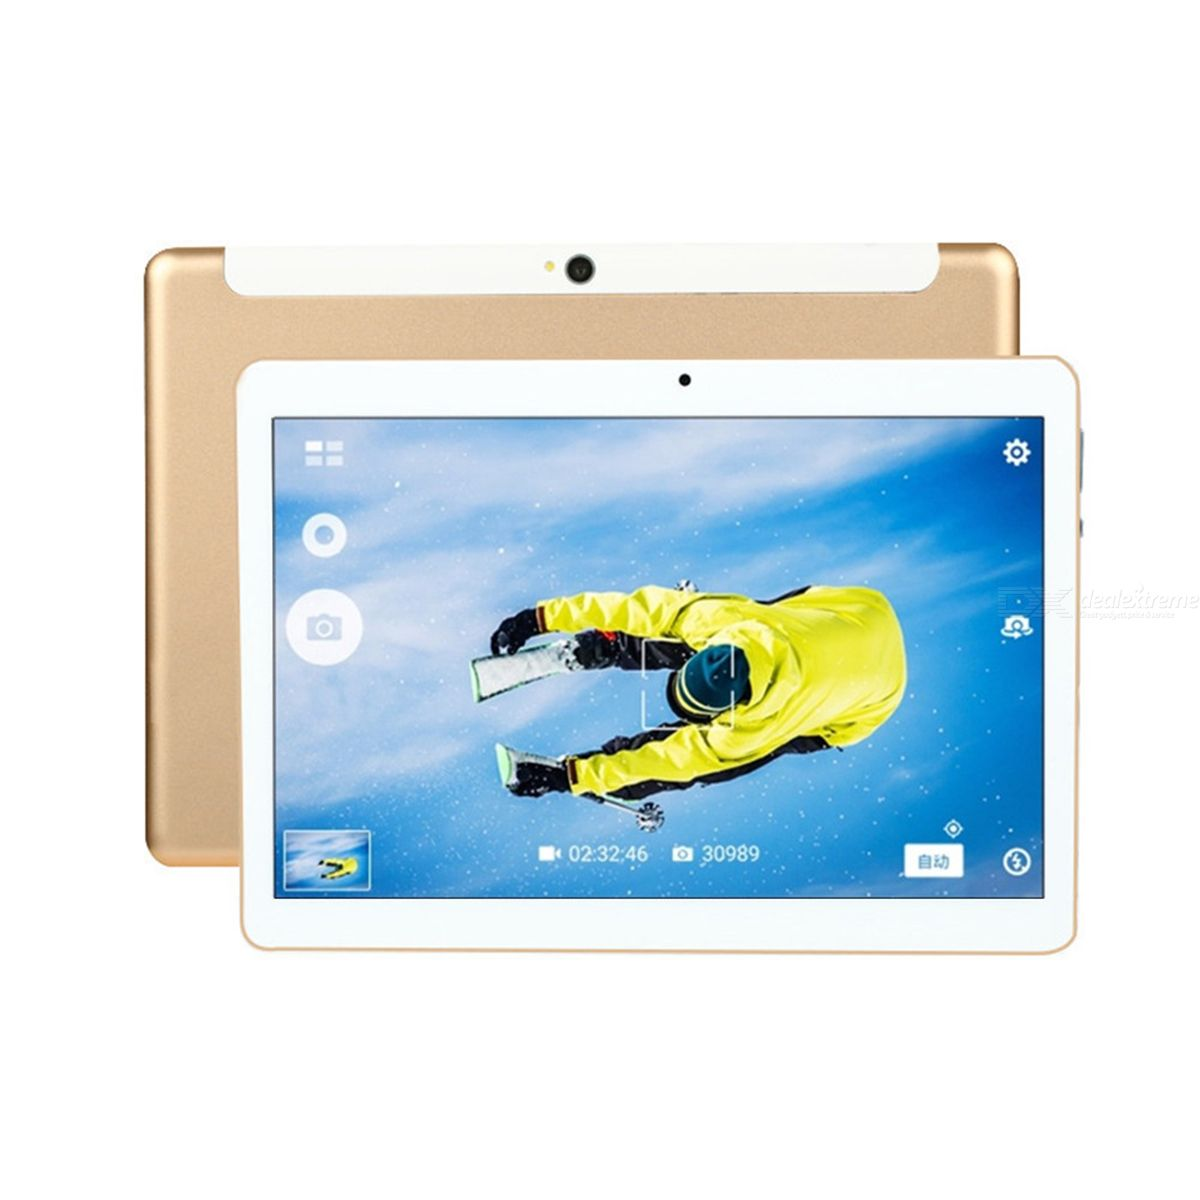 Binai Mini10 Octa-Core Android 7.0 10.1quot Tablet PC with 2GB RAM, 32GB ROM